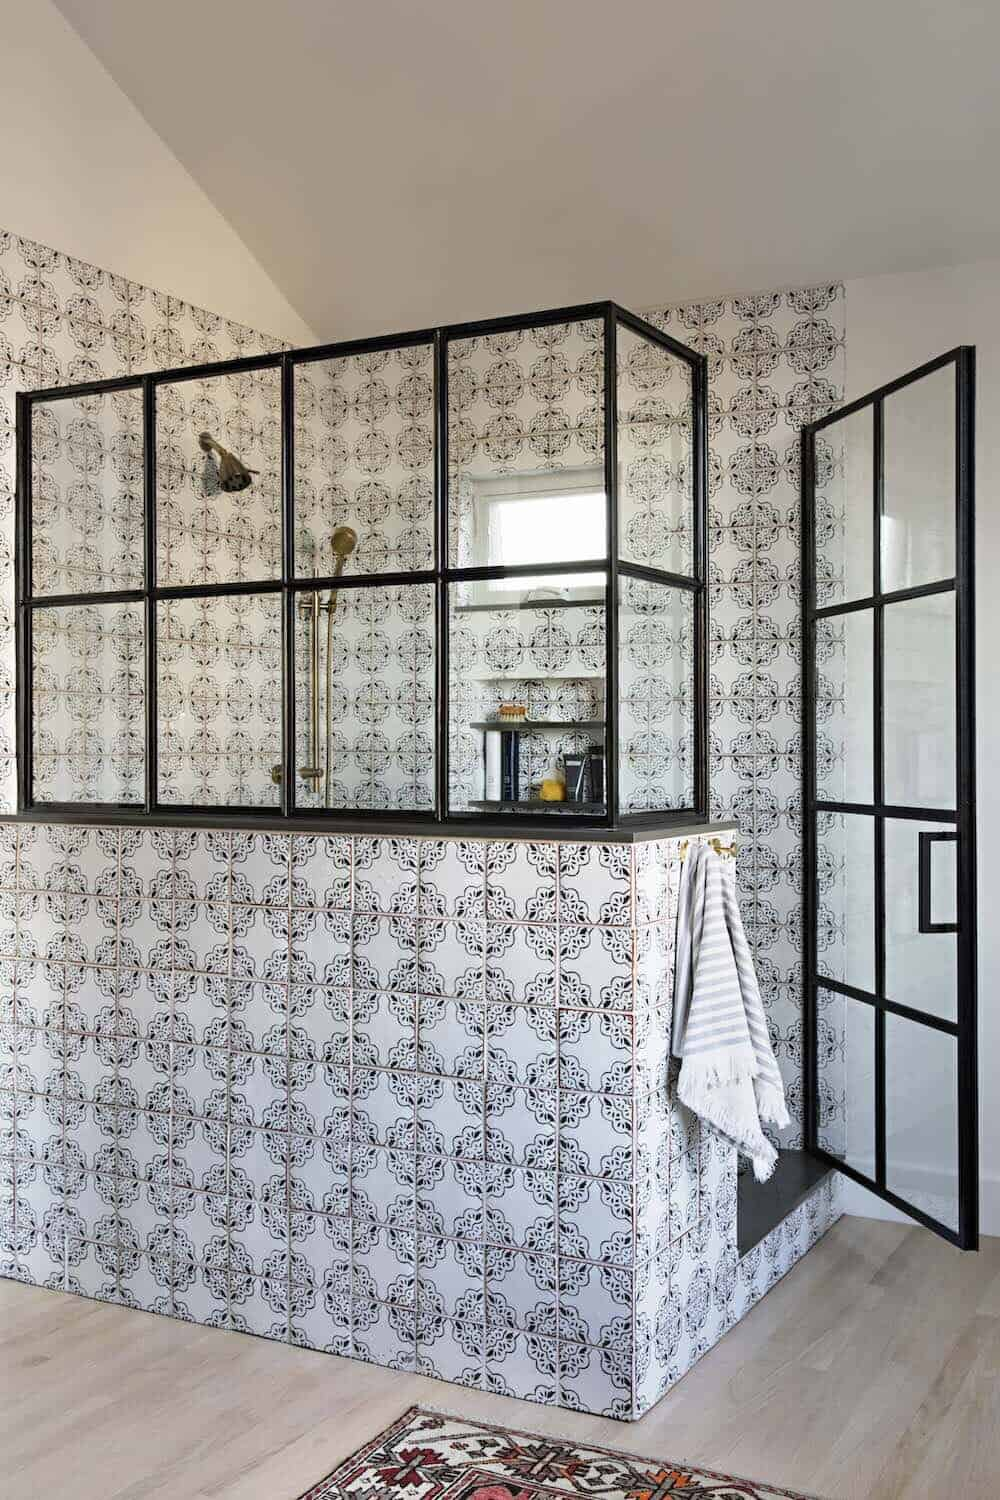 beach-style-bathroom-shower-with-patterned-tile